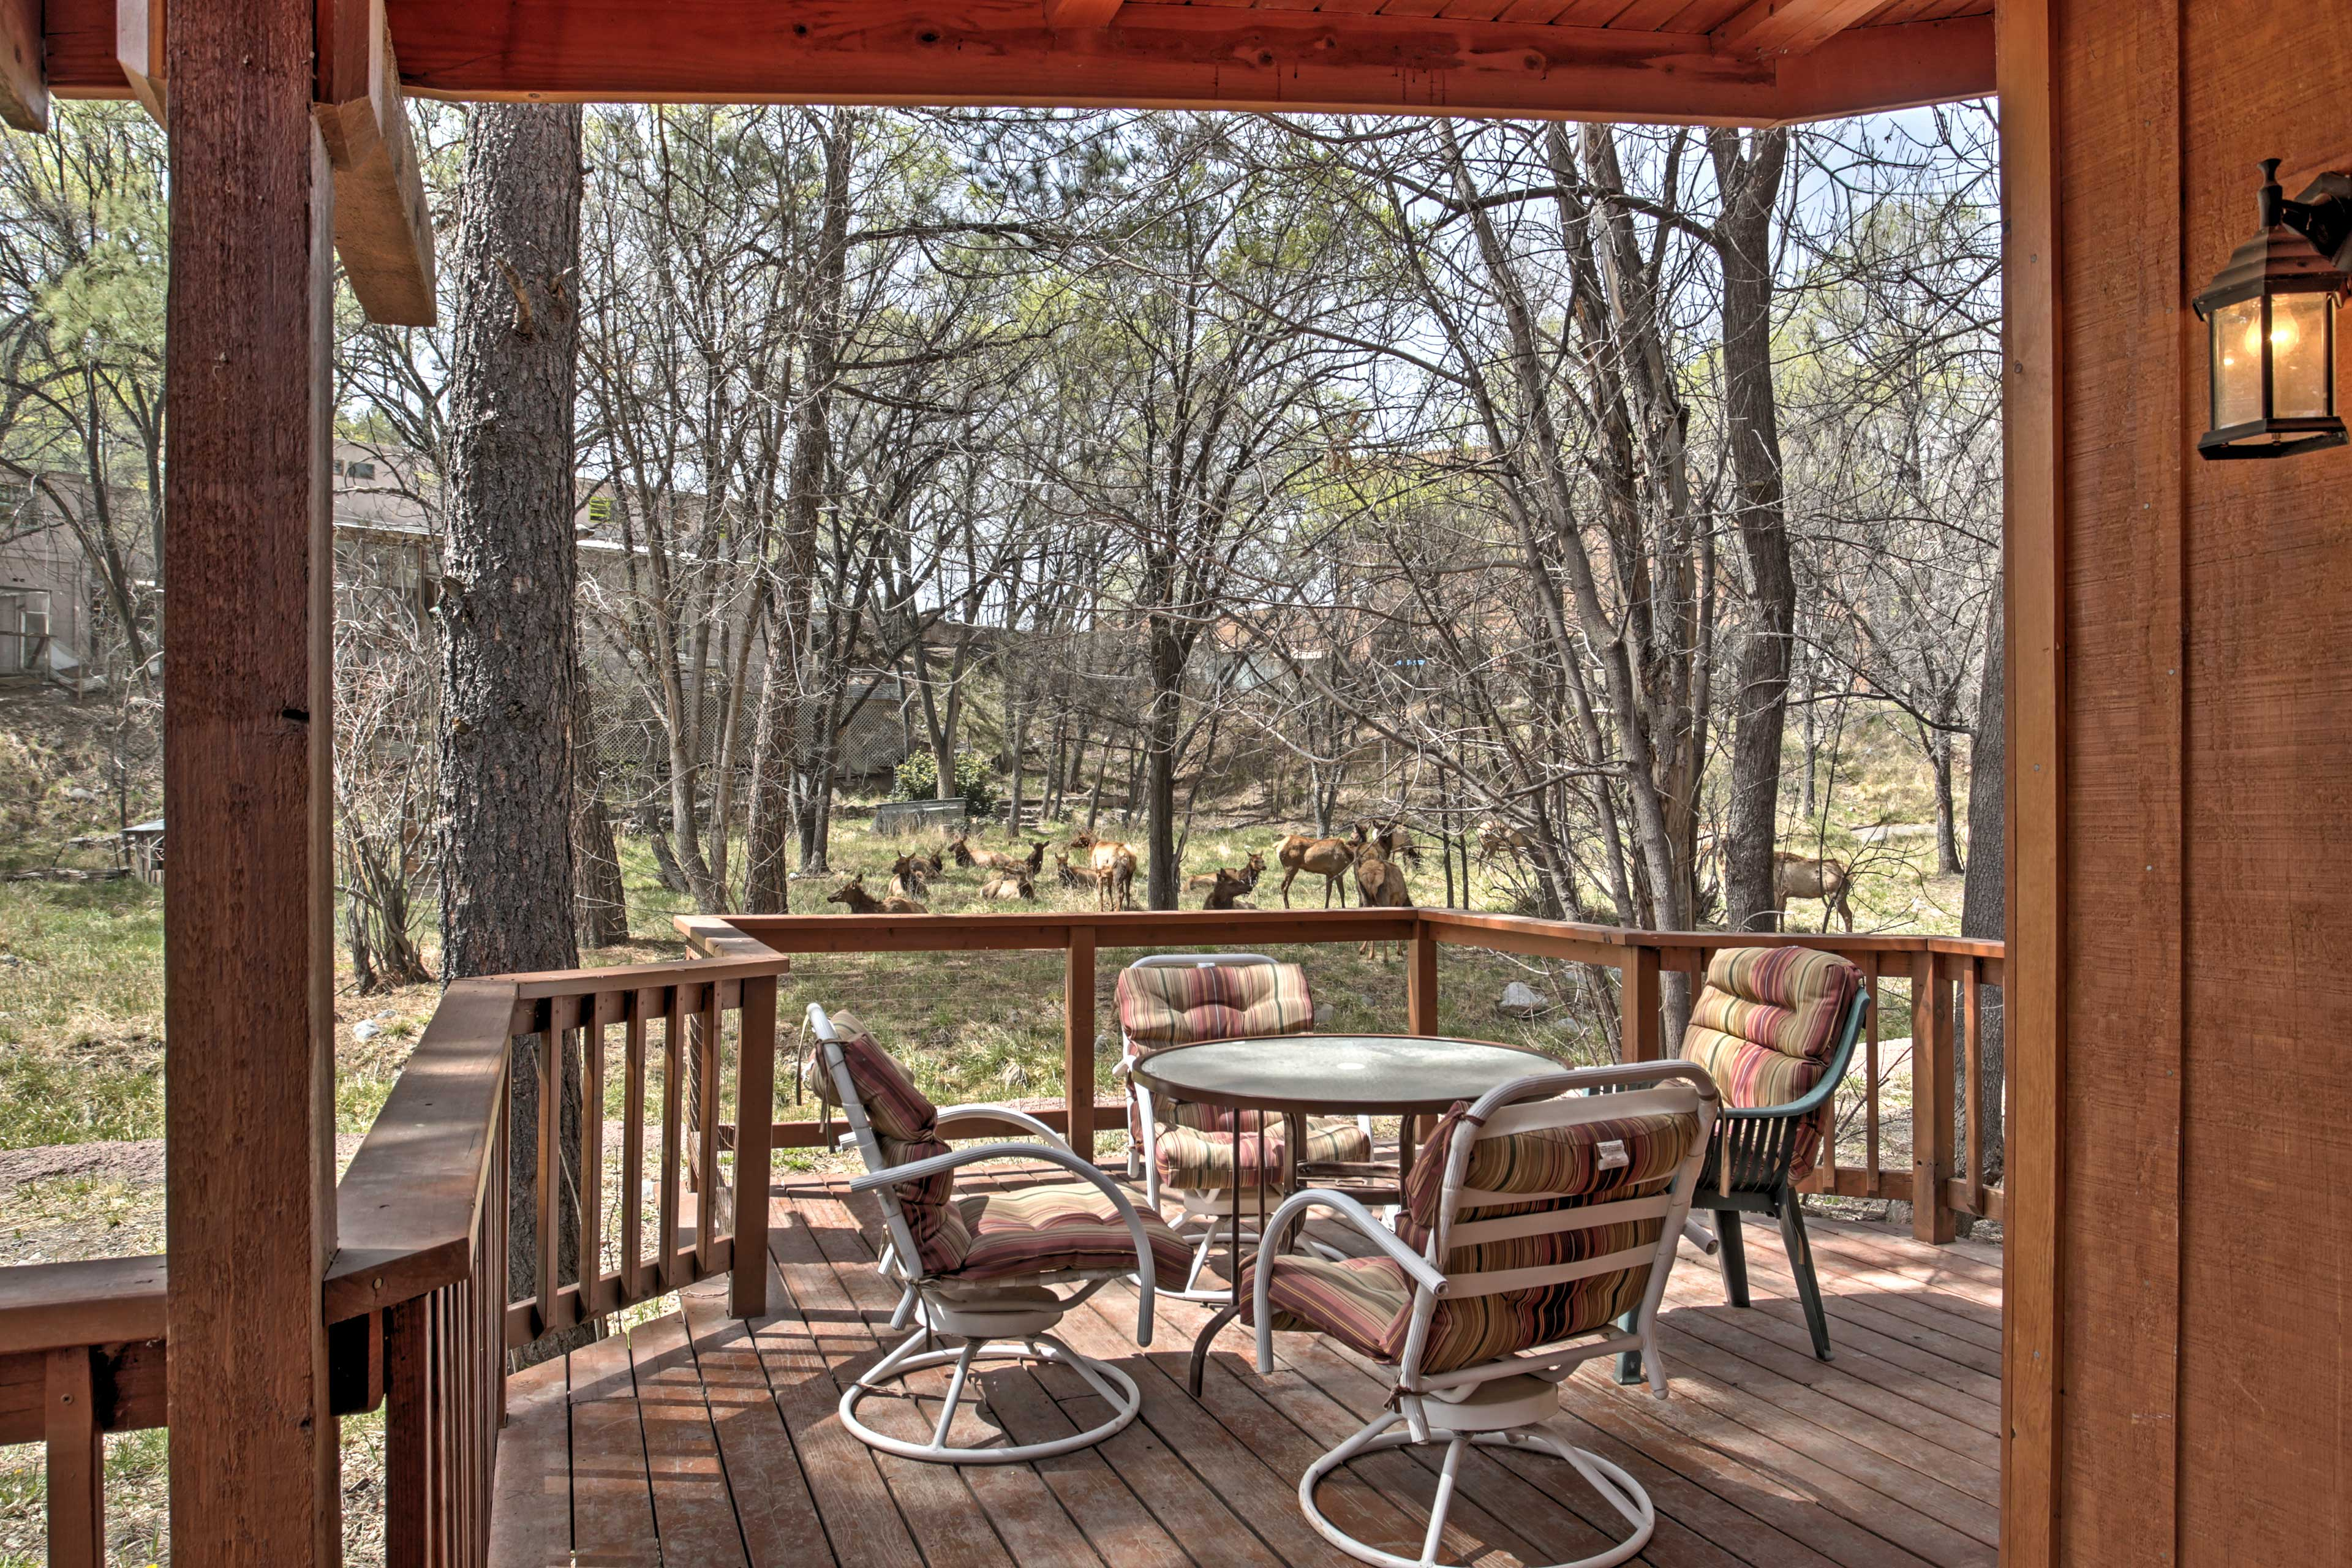 Nestled in the woods, enjoy beautiful views from the large deck.